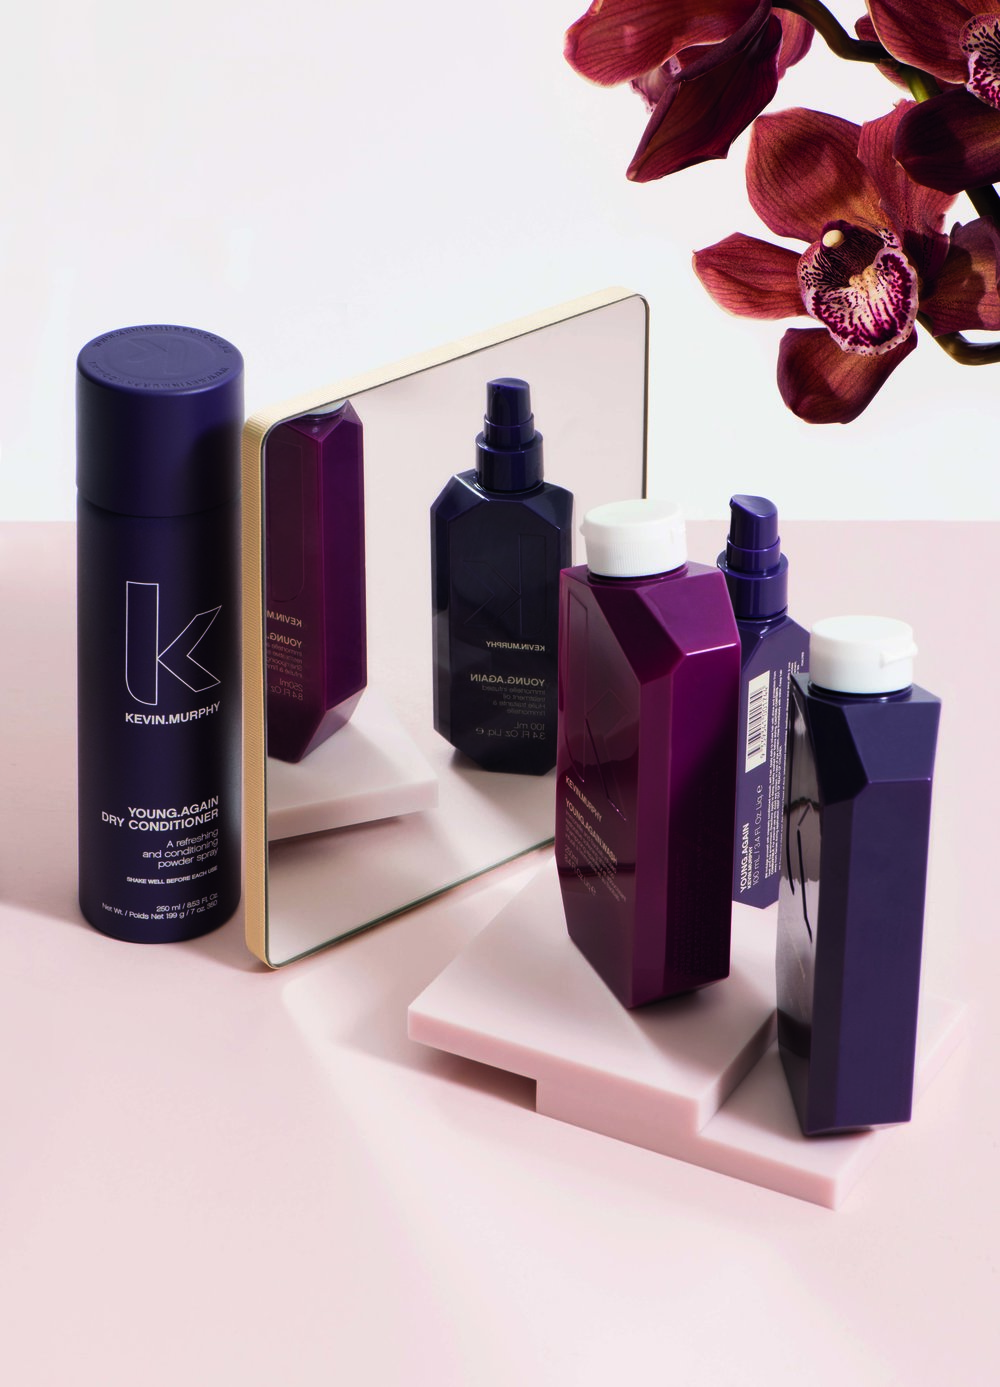 hair guide - Discover which KEVIN.MURPHY product suits you best.Graag weten welk product geschikt is voor jouw haartype?Trouvez les produits qui convients vos type des cheveux.